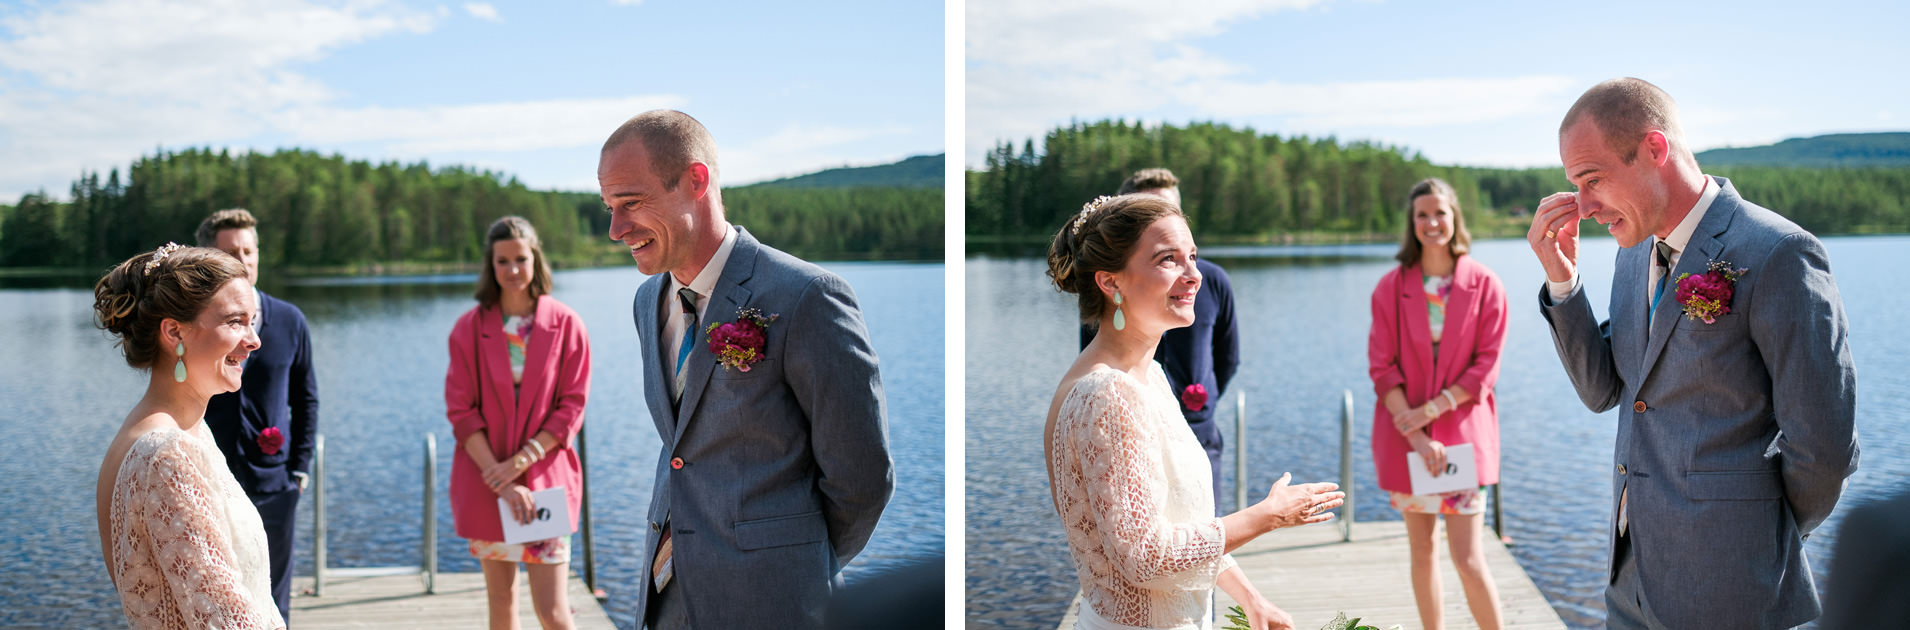 dalarna wedding photographer